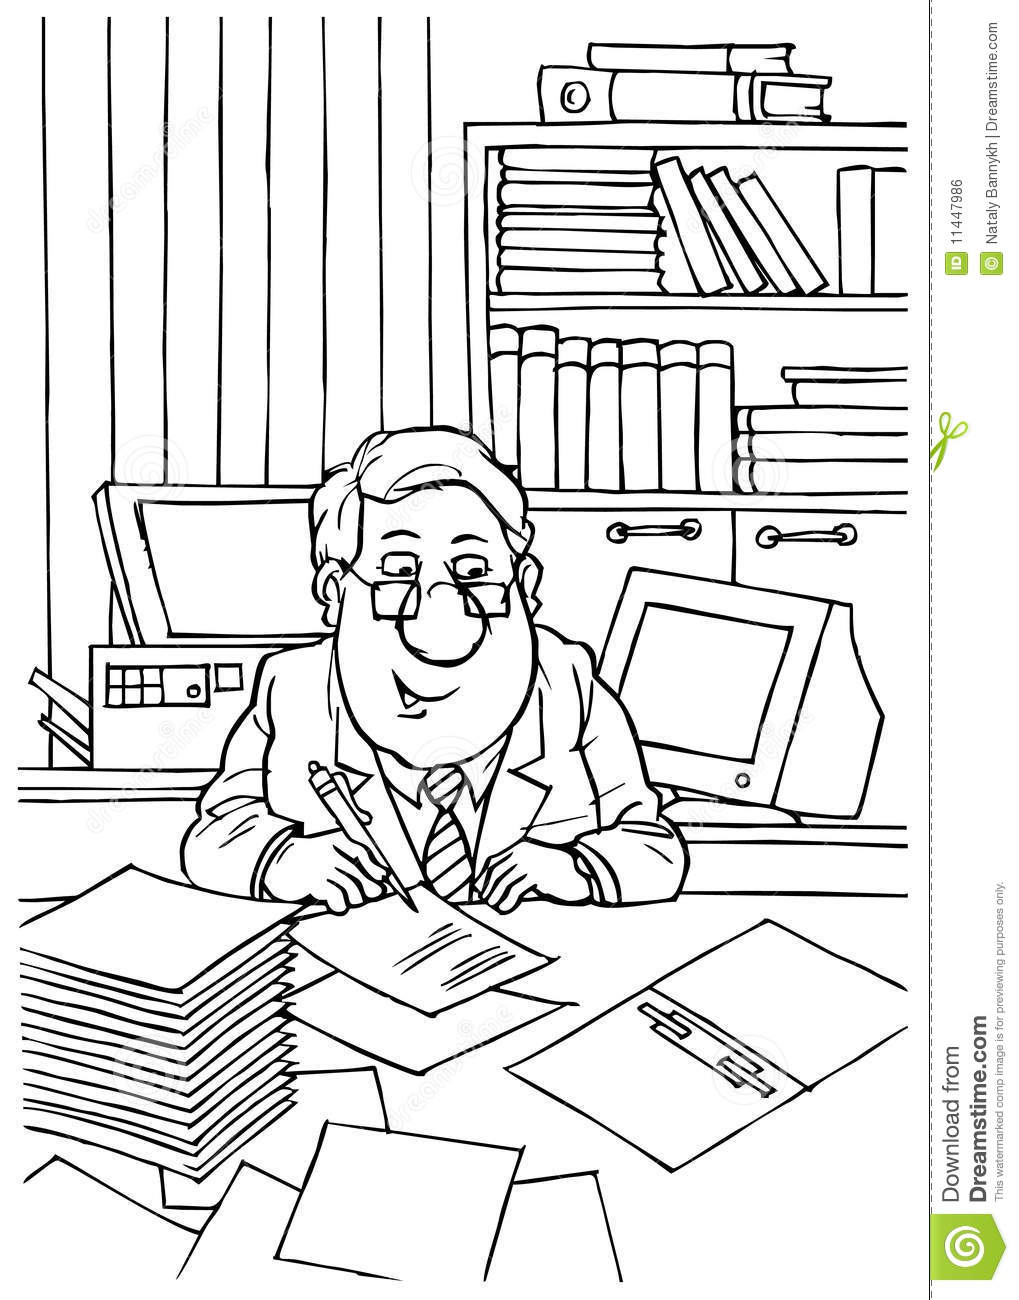 bookkeeper royalty free stock image